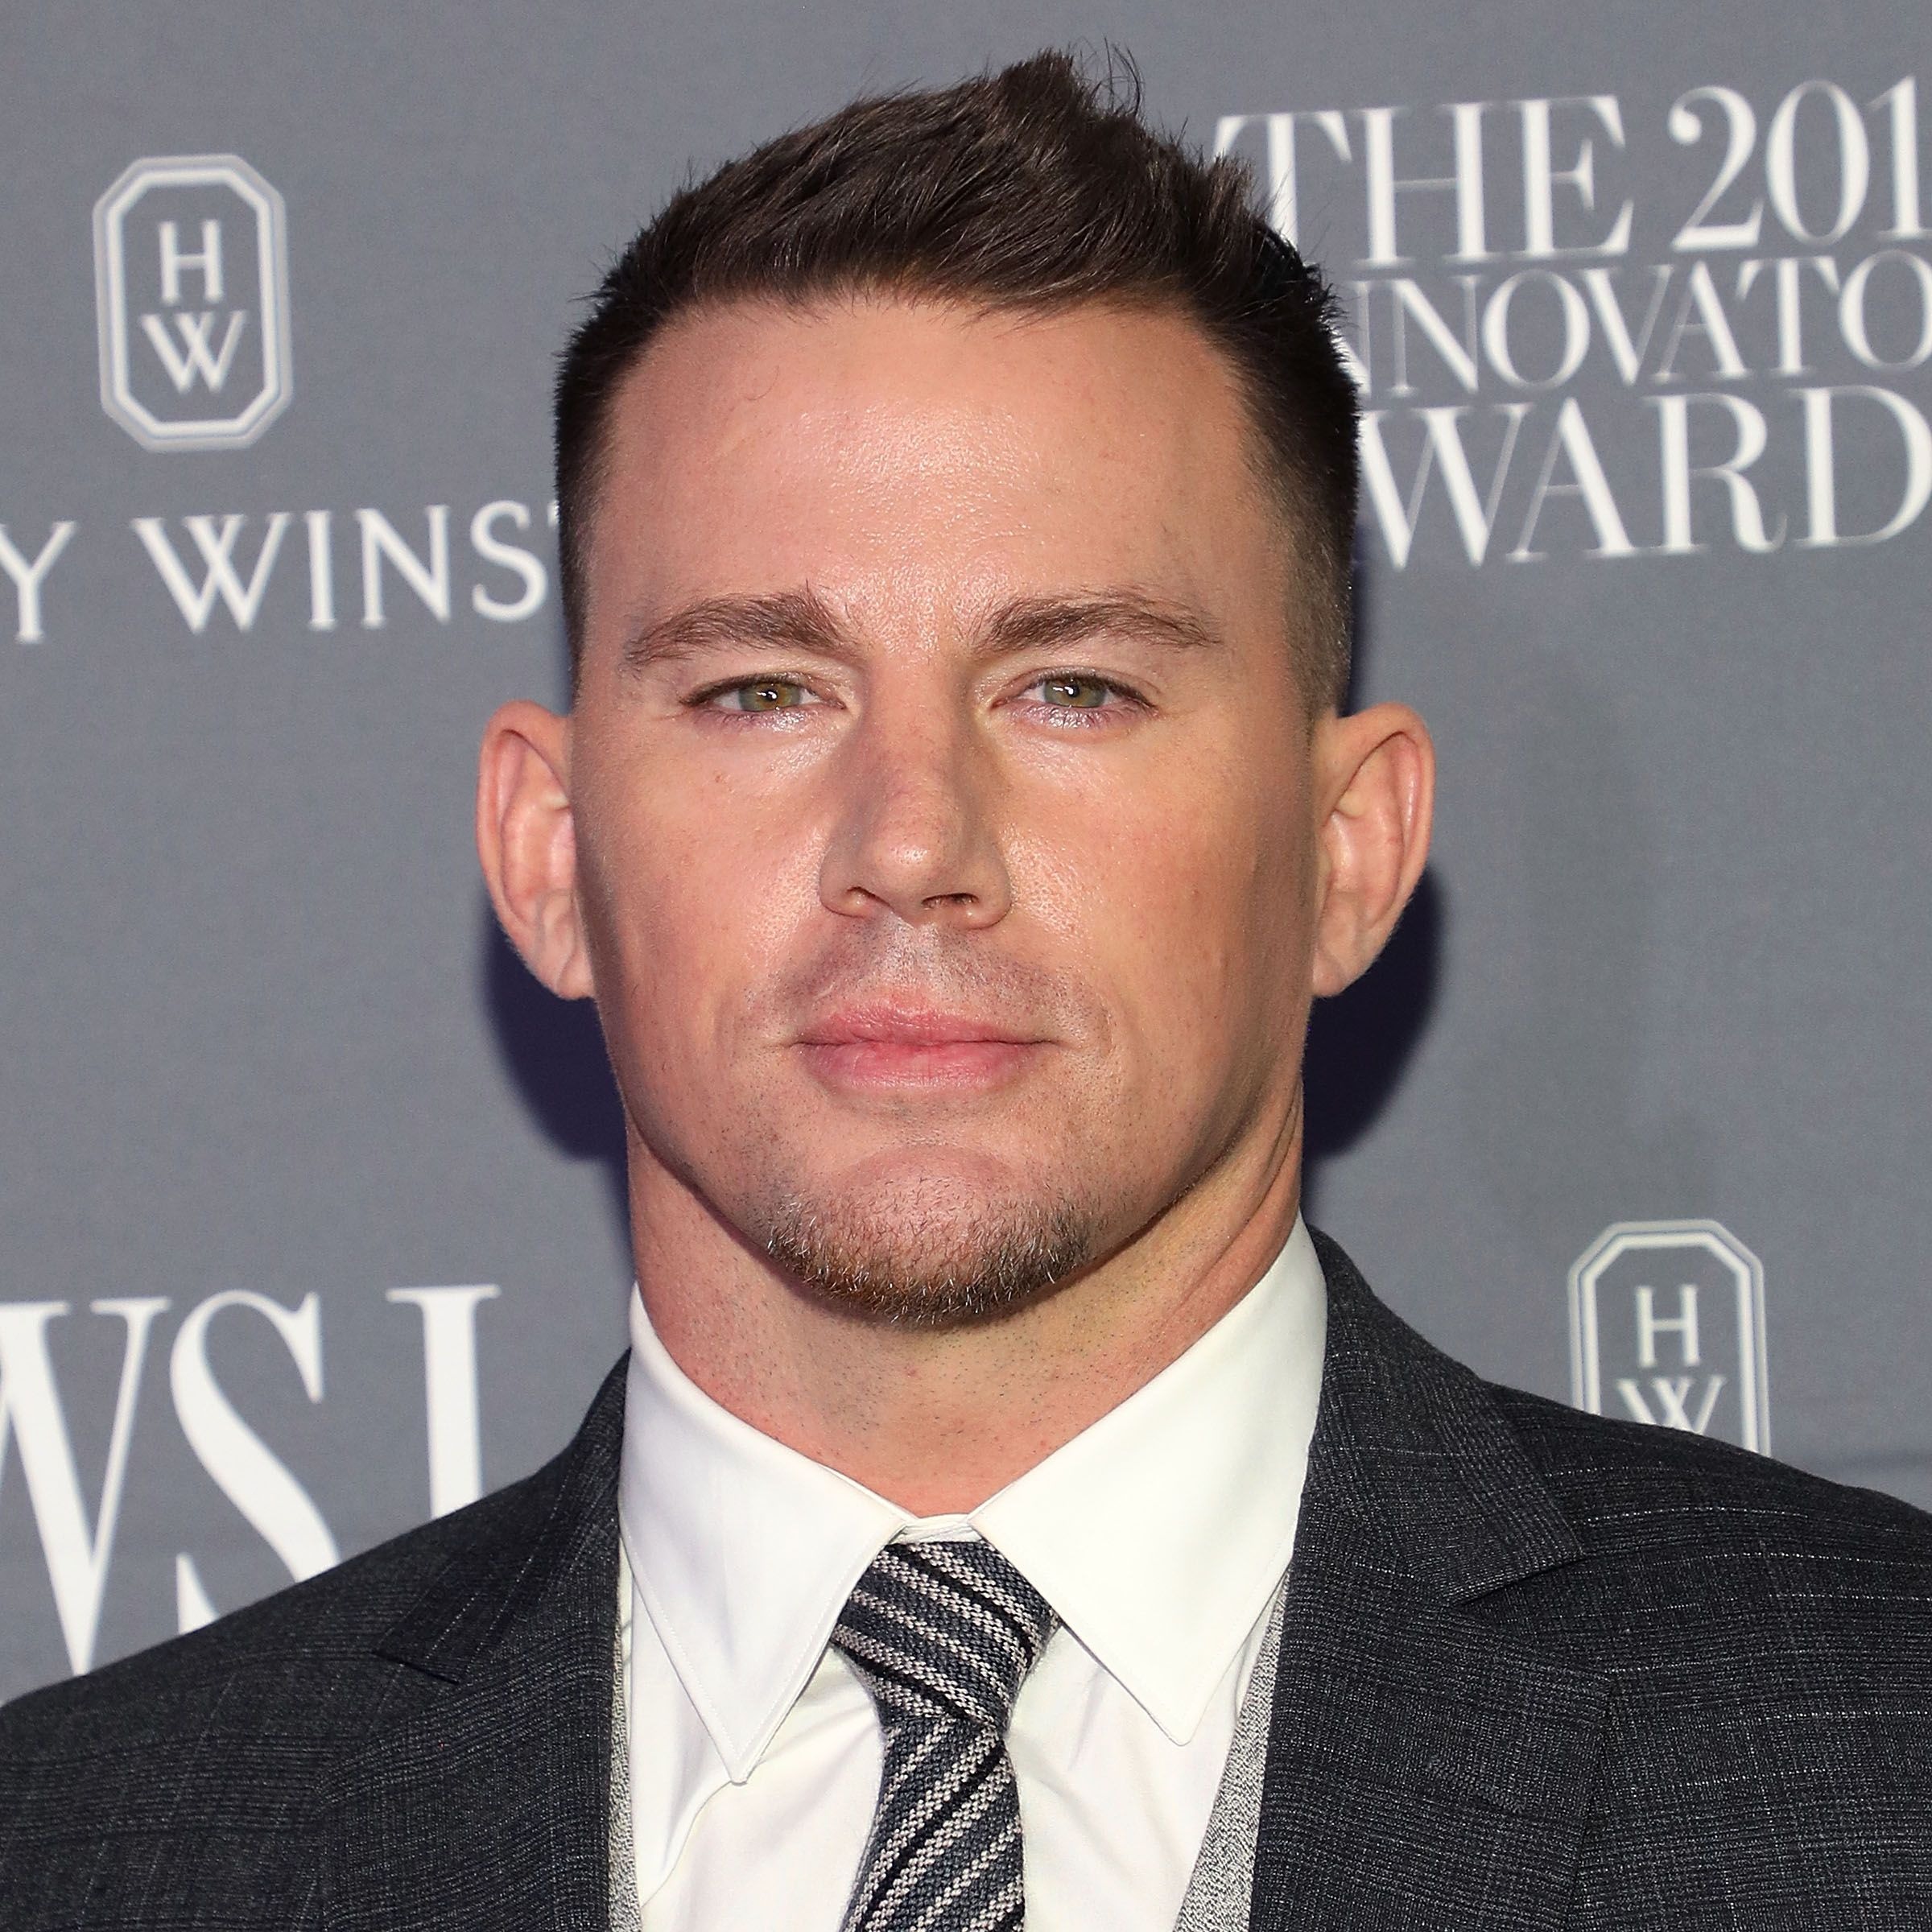 Channing Tatum Dyed His Hair Blond, and Now He Looks Exactly Like Eminem